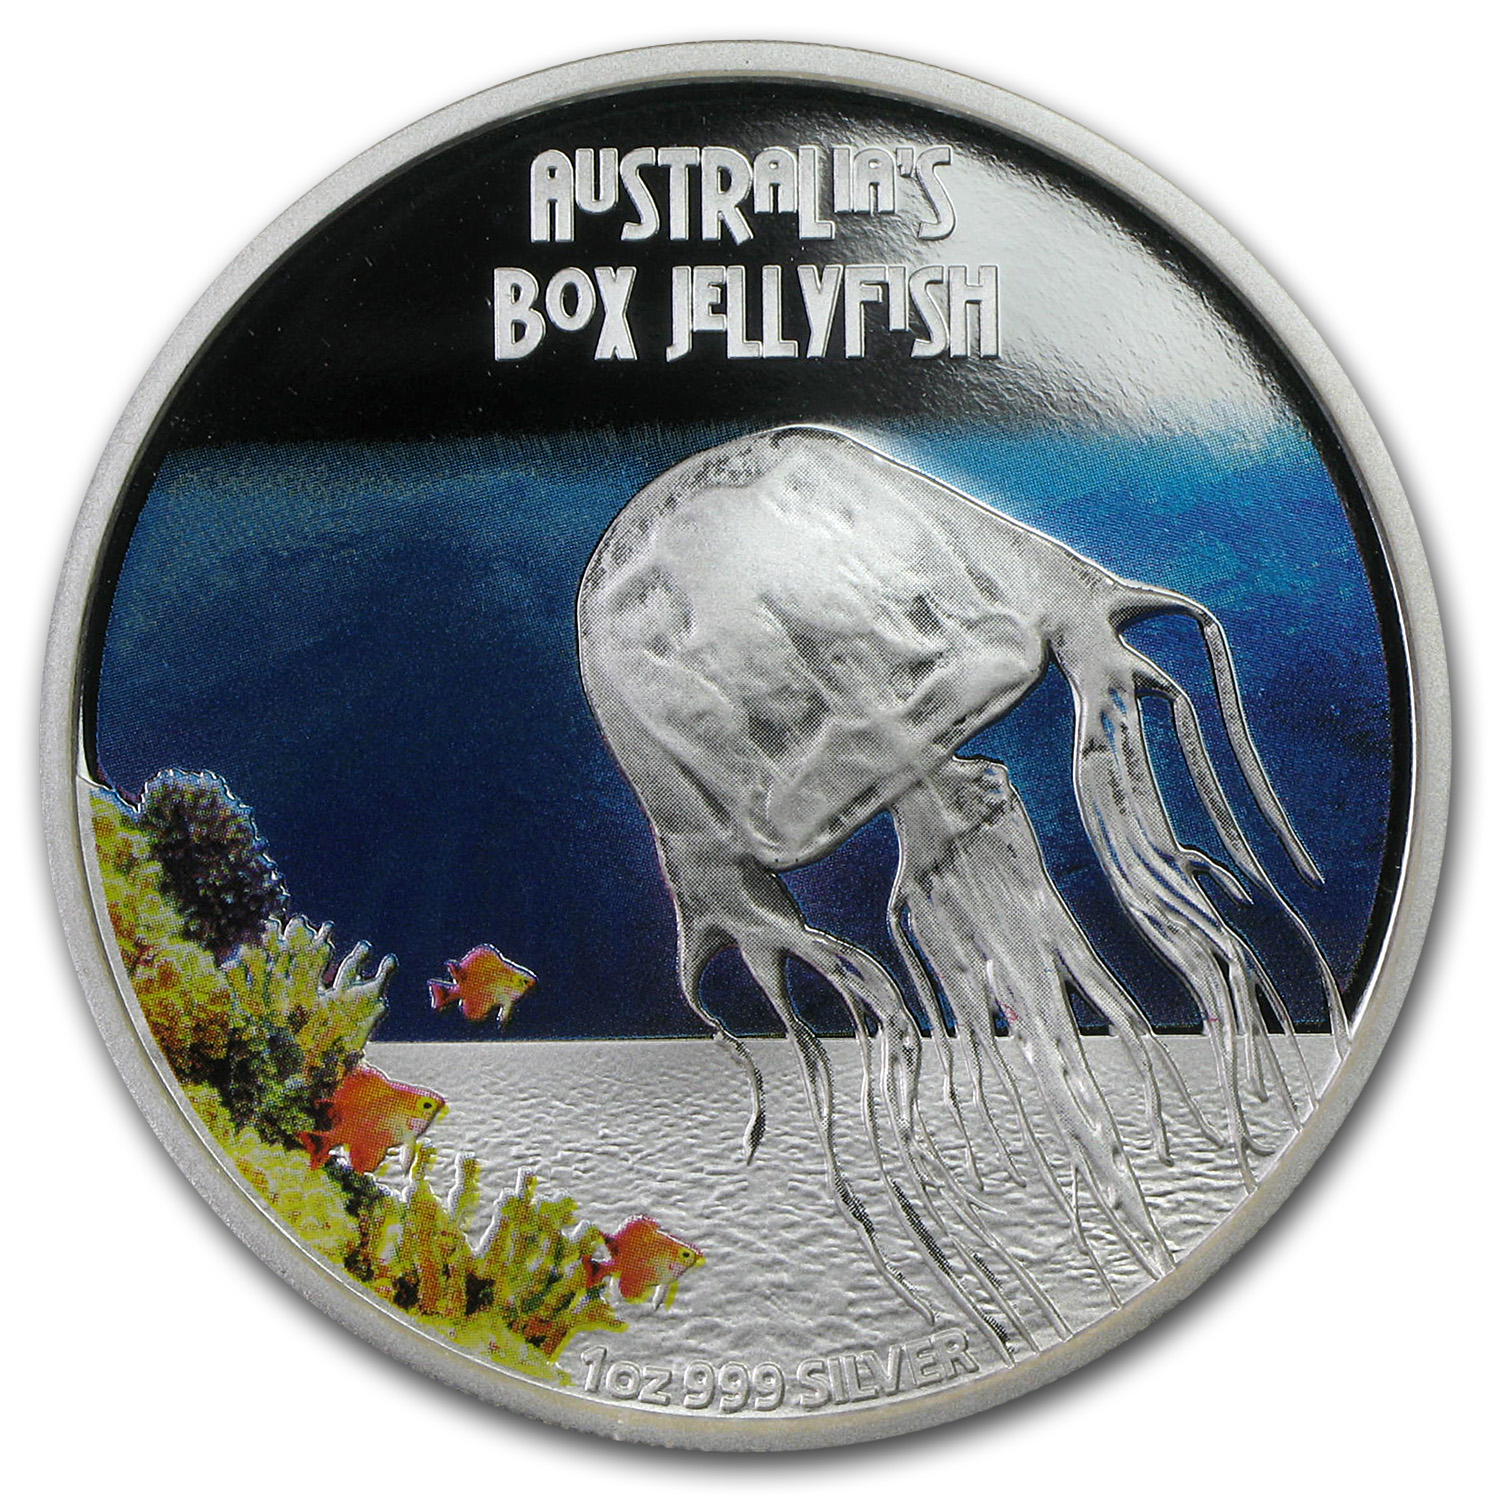 2011 1 oz Proof Silver Box Jellyfish - Deadly and Dangerous